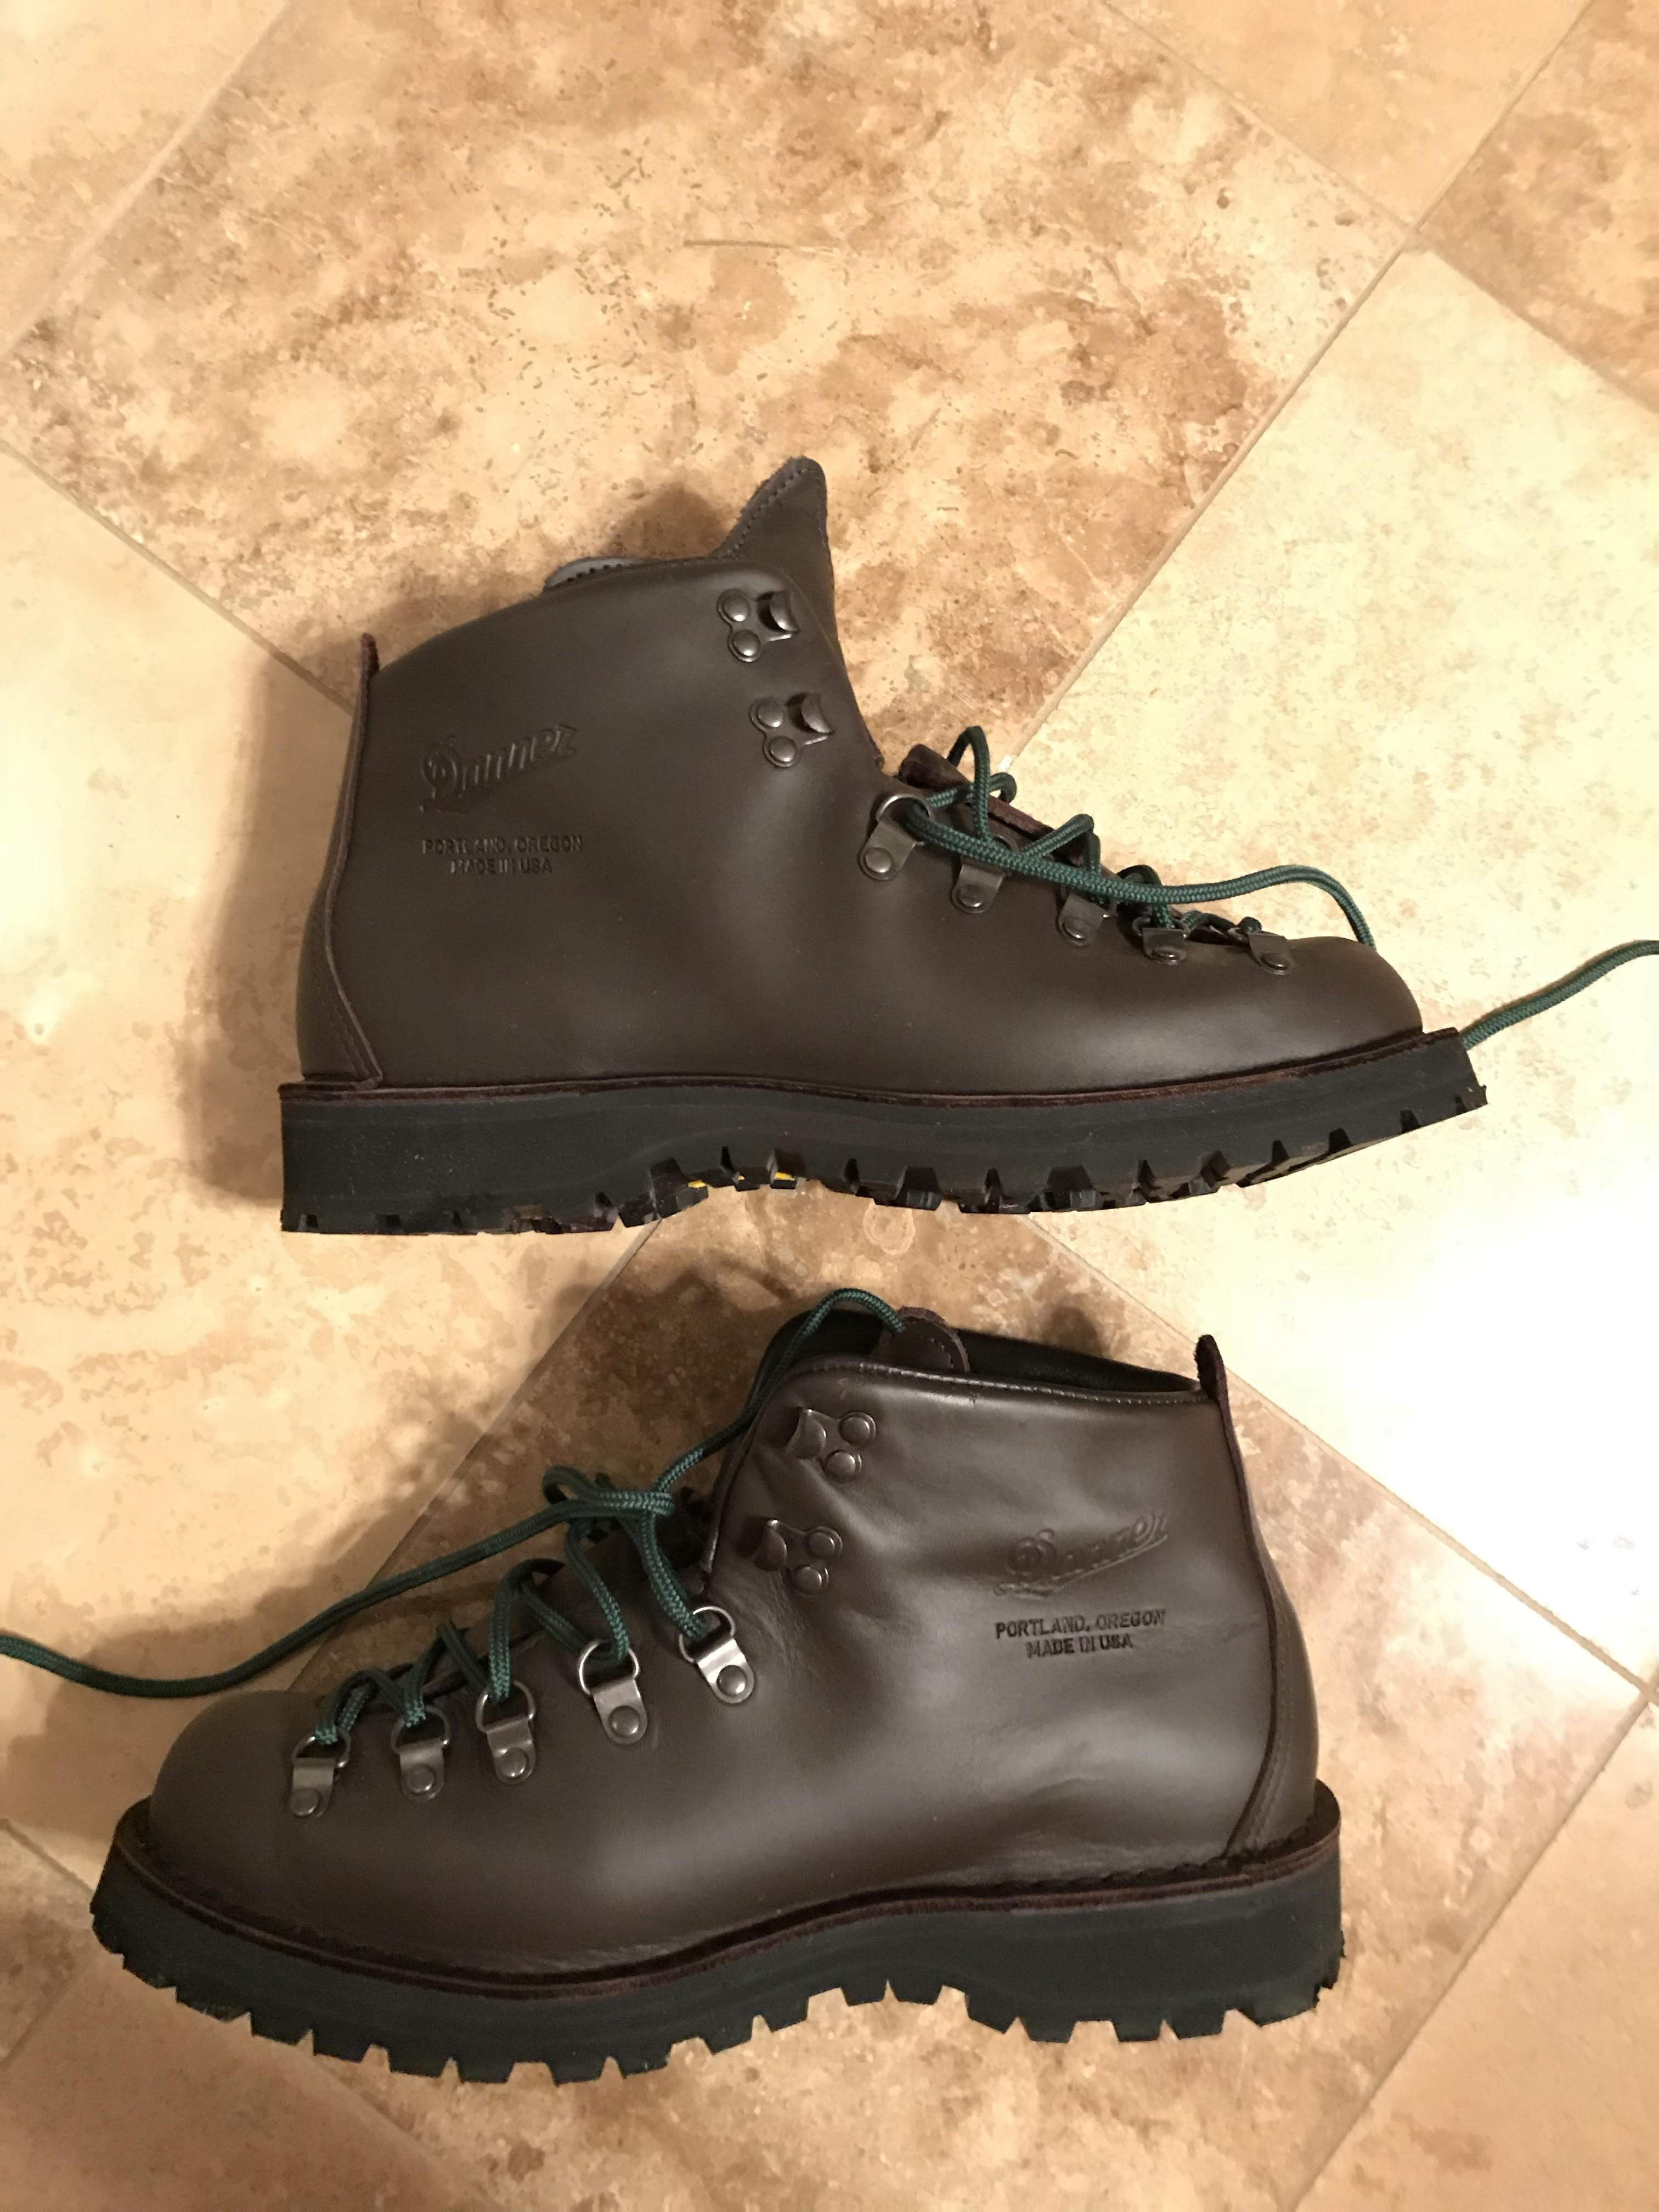 boots ii light leather home mountain idea regard gtx for lighting your remodel with men outdoor to danner